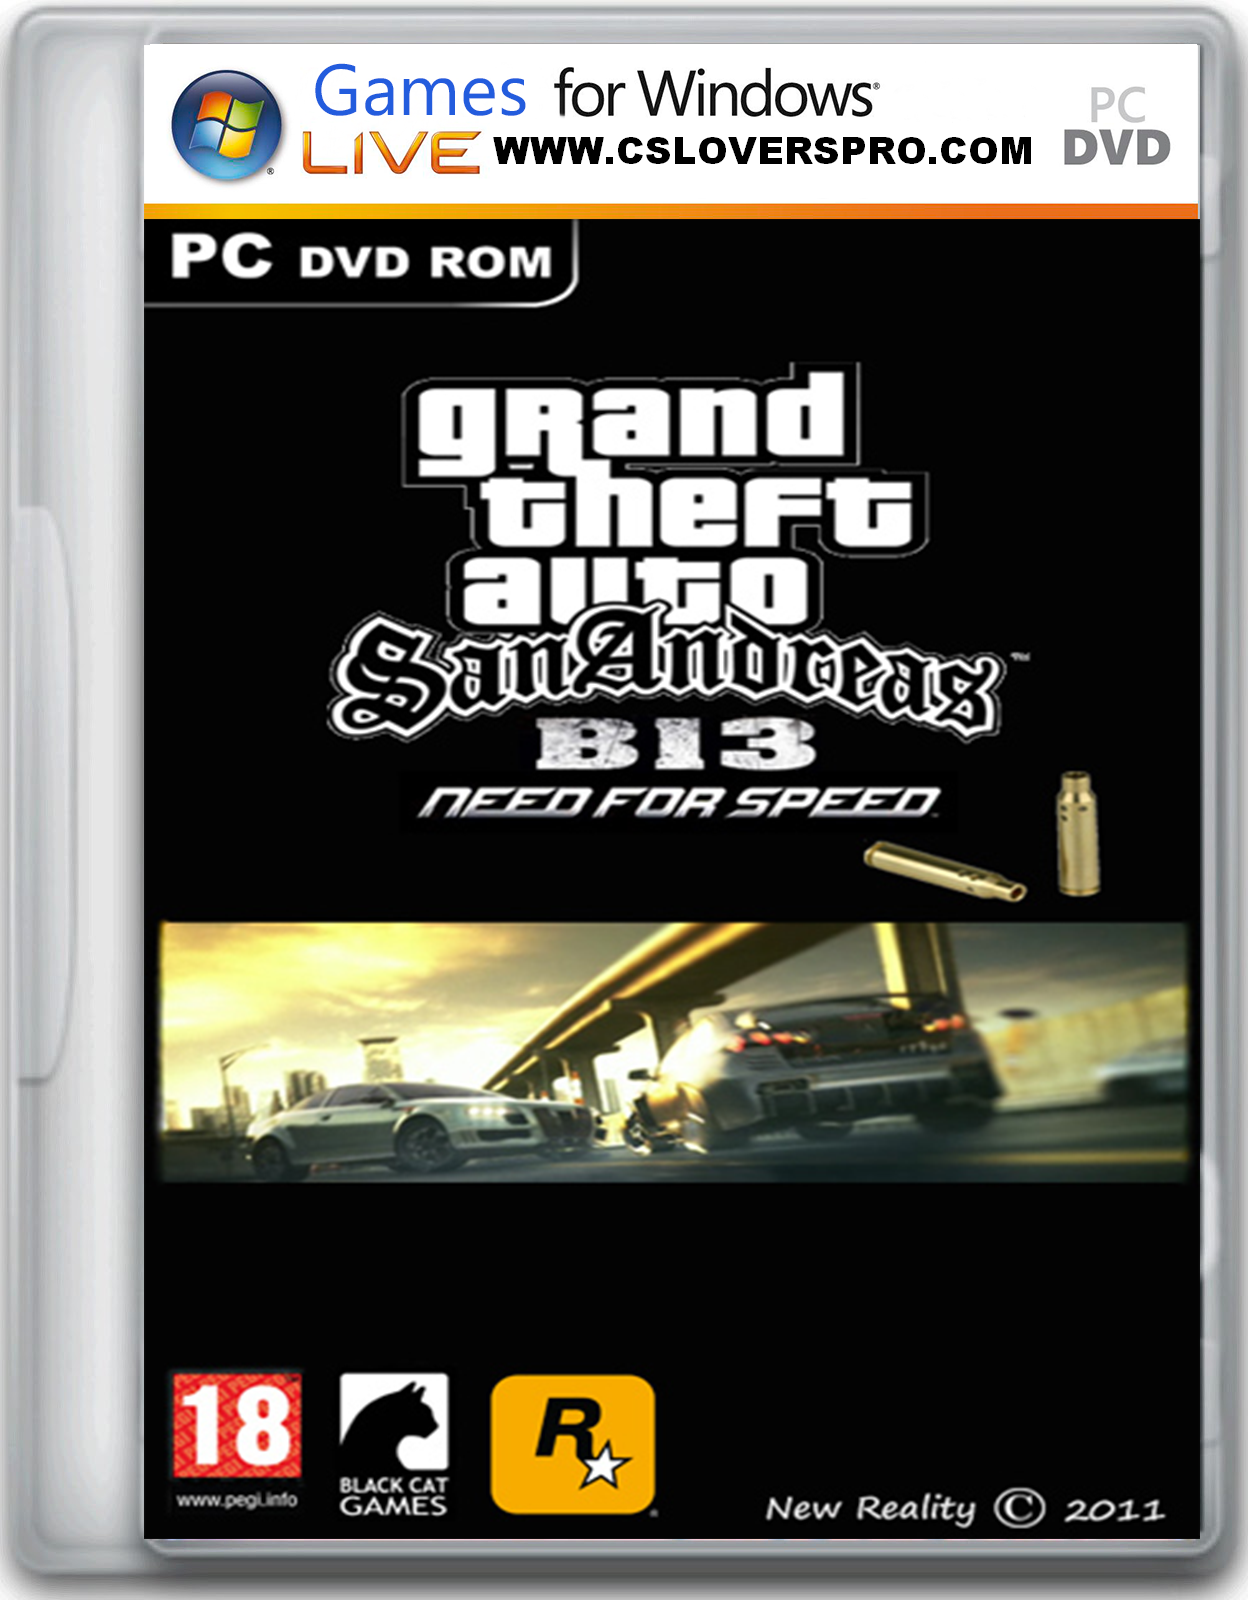 Grand Theft Auto San Andreas B13 Need For Speed Edition